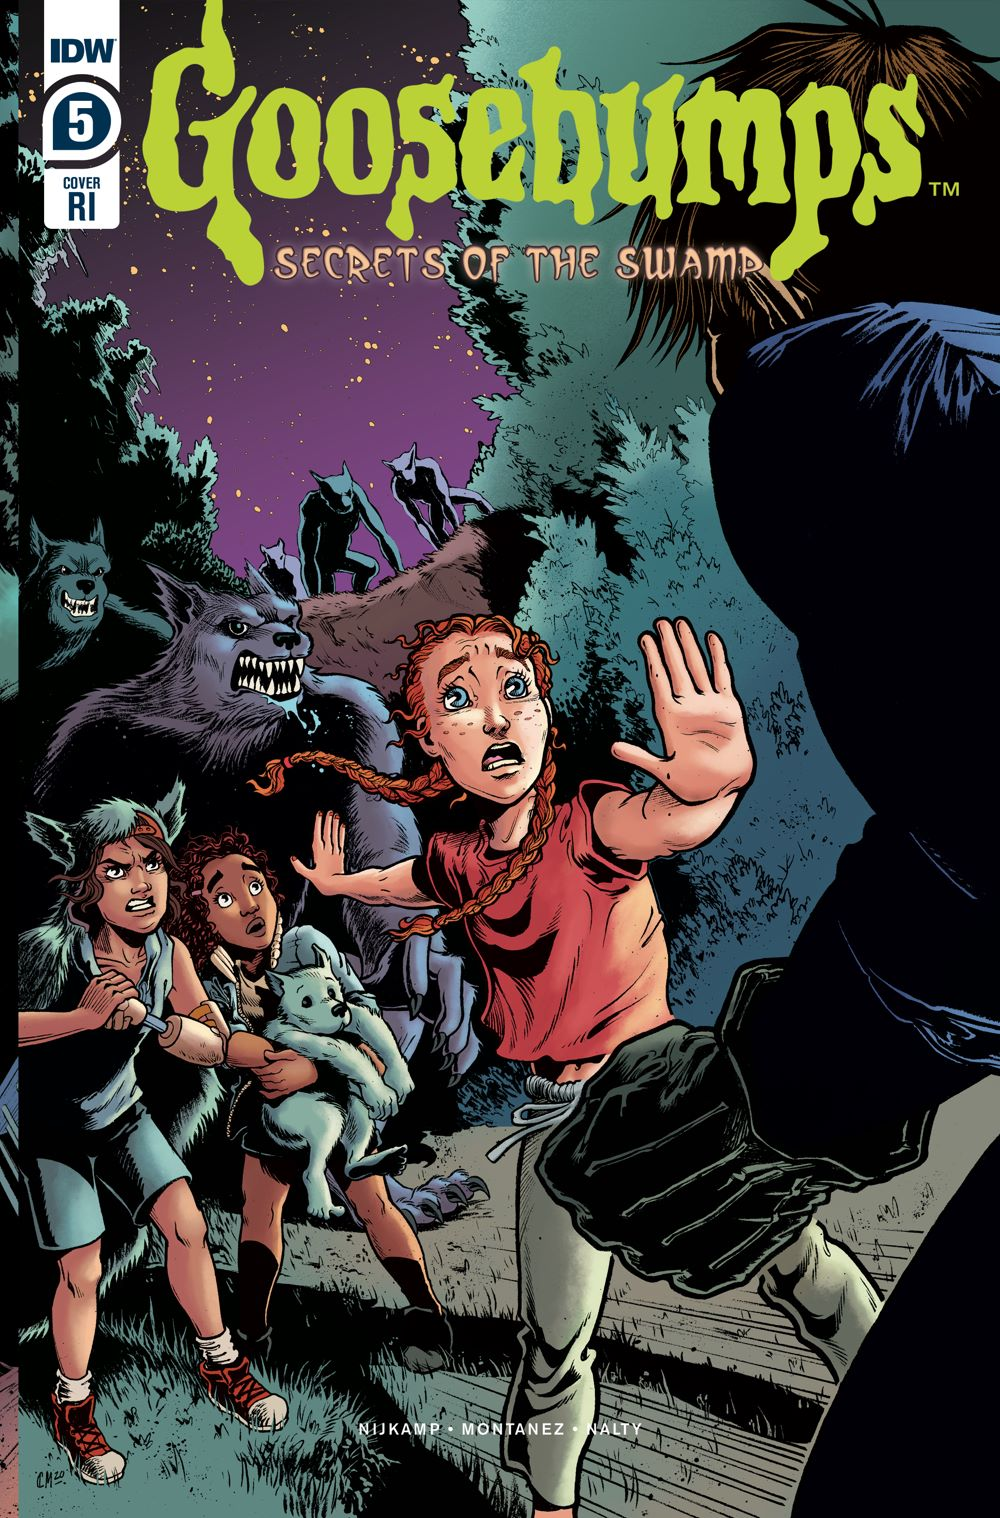 Goosebumps_SOtS_05-RIcvr ComicList: IDW Publishing New Releases for 02/10/2021